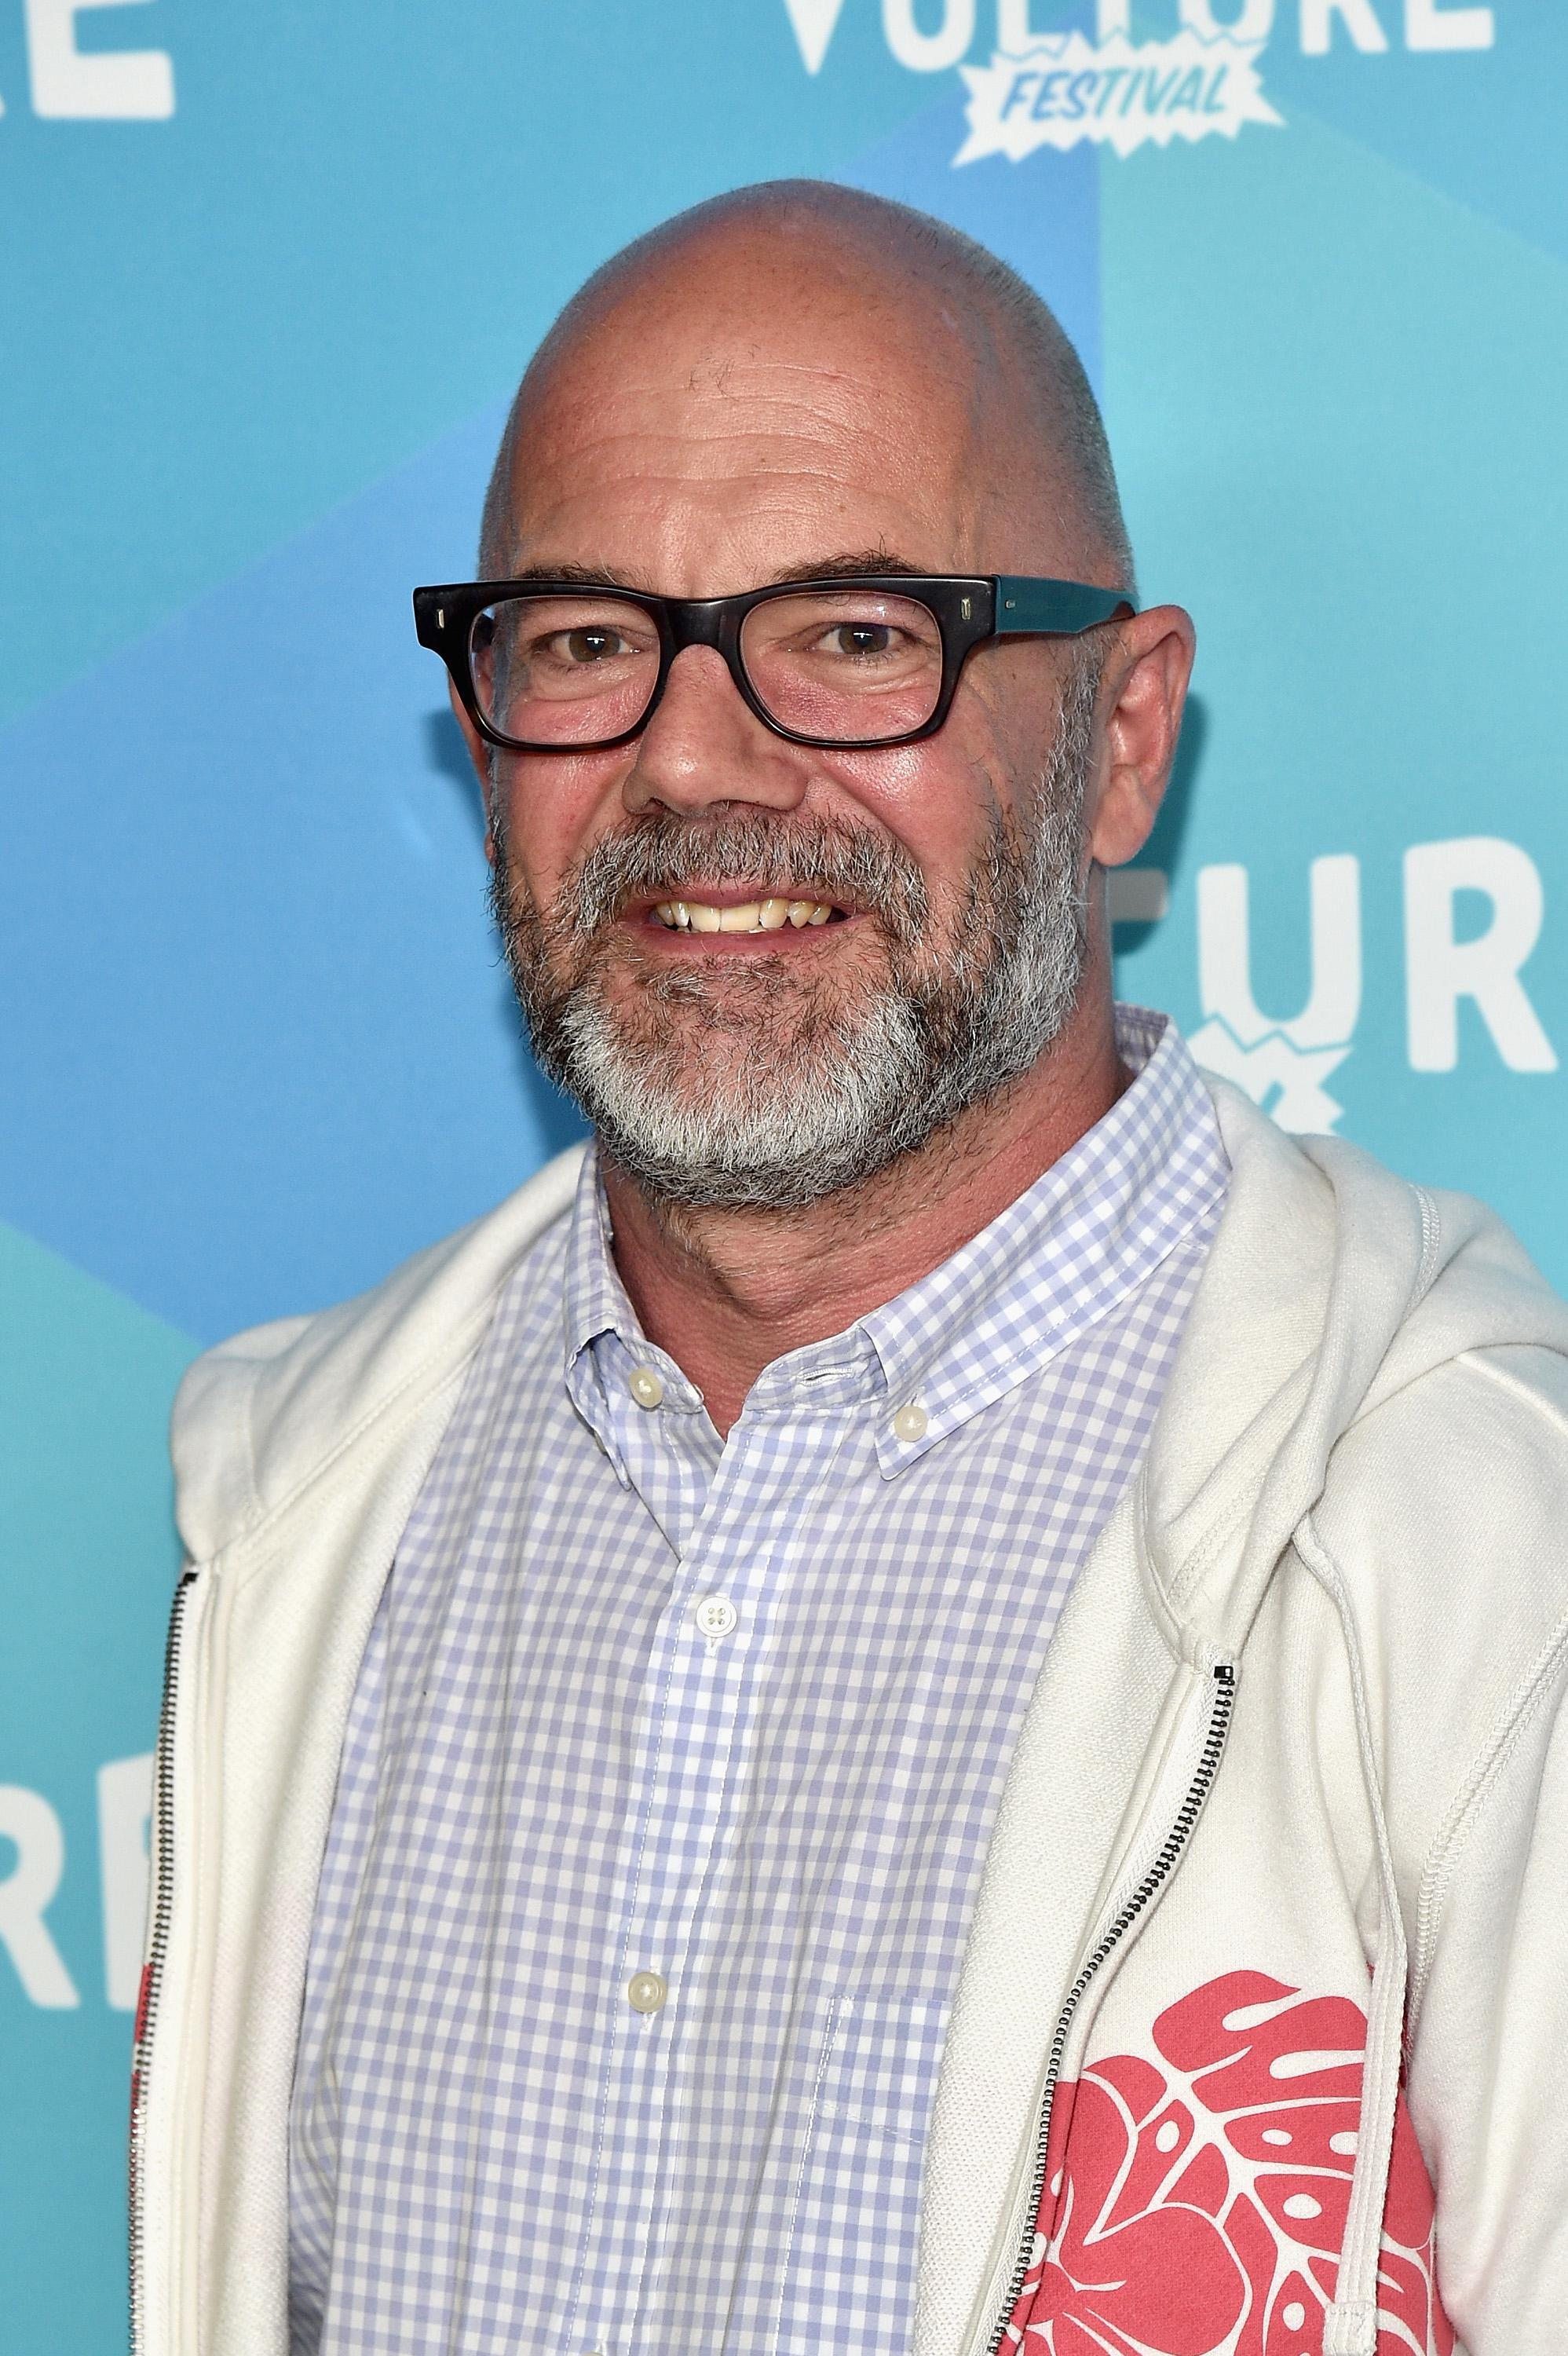 Andrew Sullivan attends the 2017 Vulture Festival in New York City.